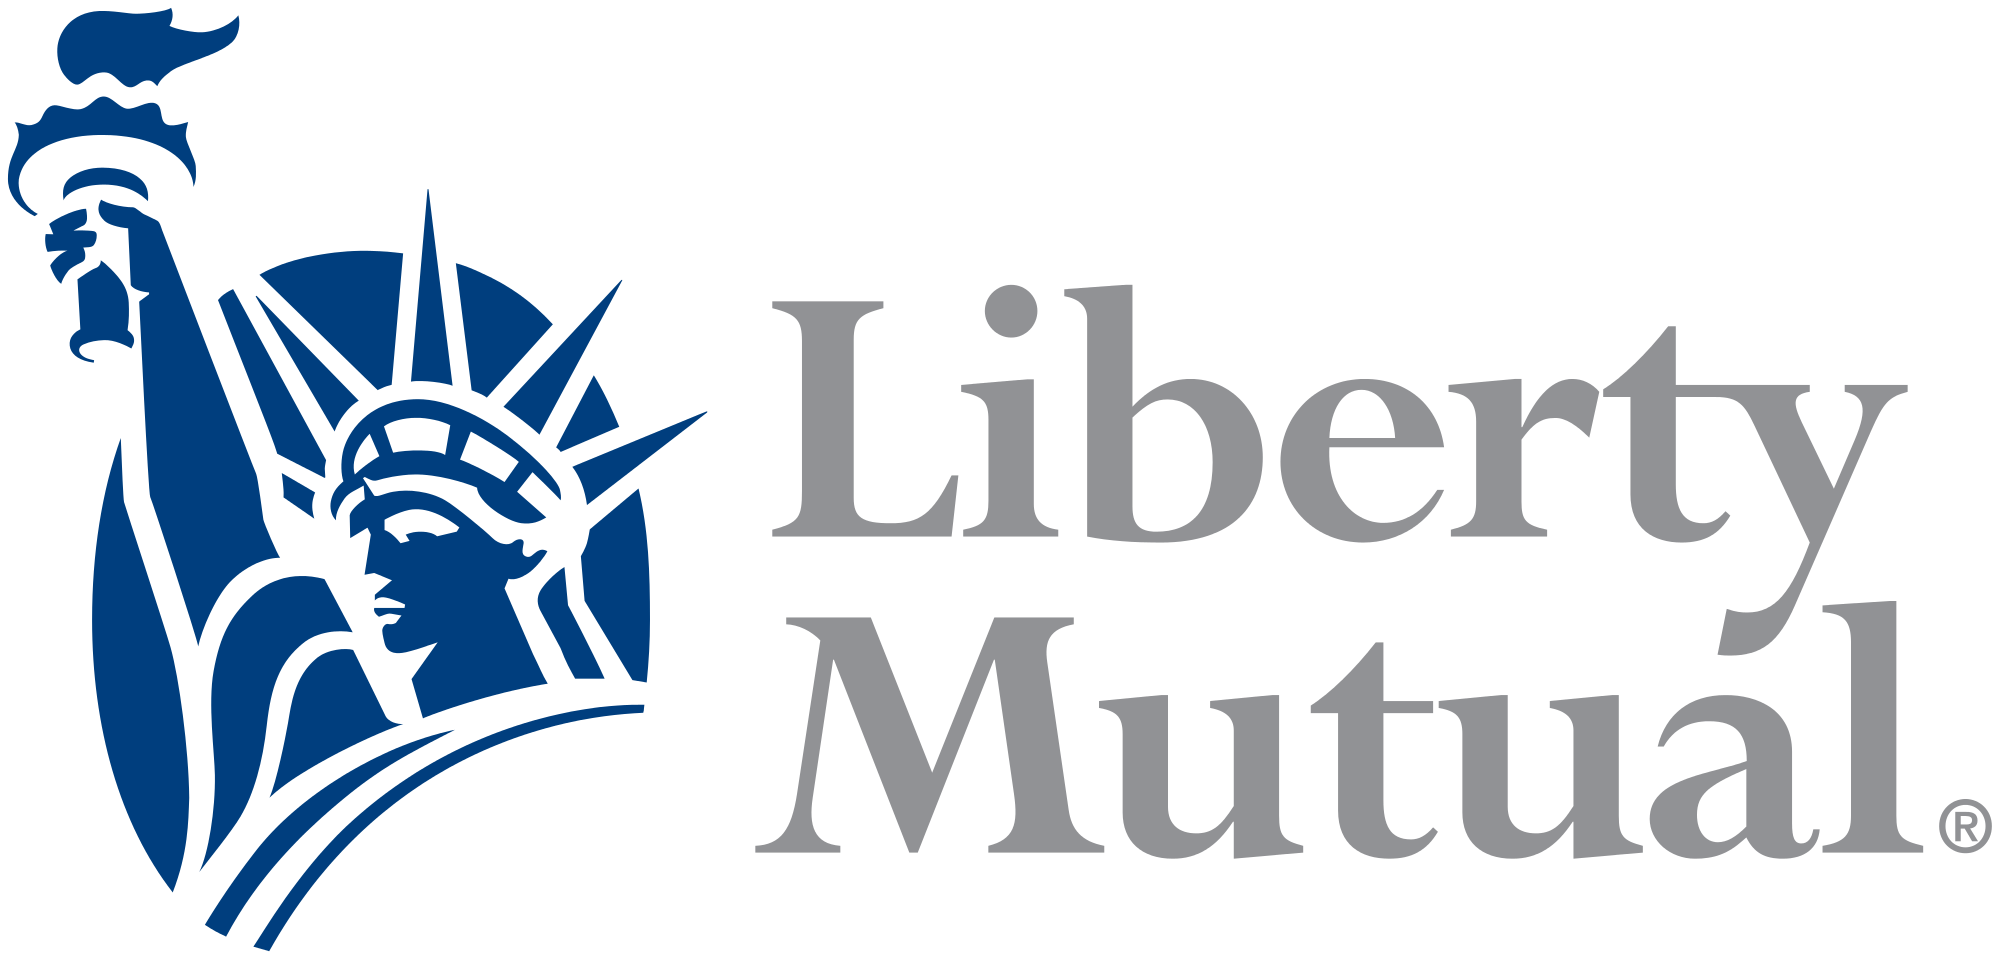 Liberty Mutual Life Insurance Quotes Extraordinary Liberty Mutual Insurance Logos  Google Search  Insurance